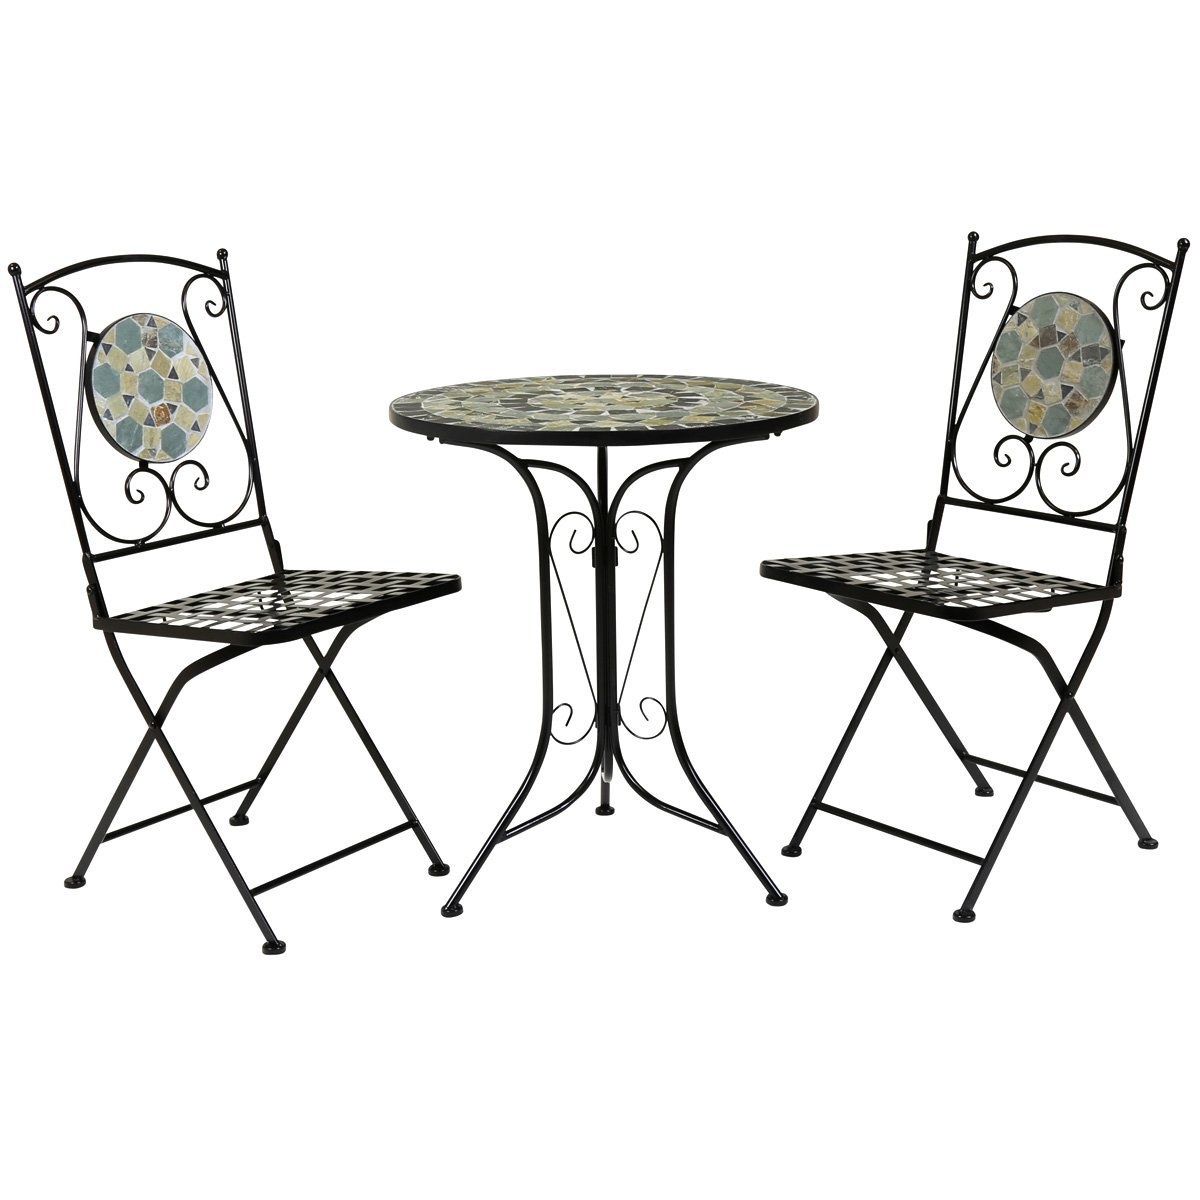 Charles bentley garden 3 piece wrought iron mosaic bistro set table and 2 chairs by charles bentley shop online for kitchen in australia